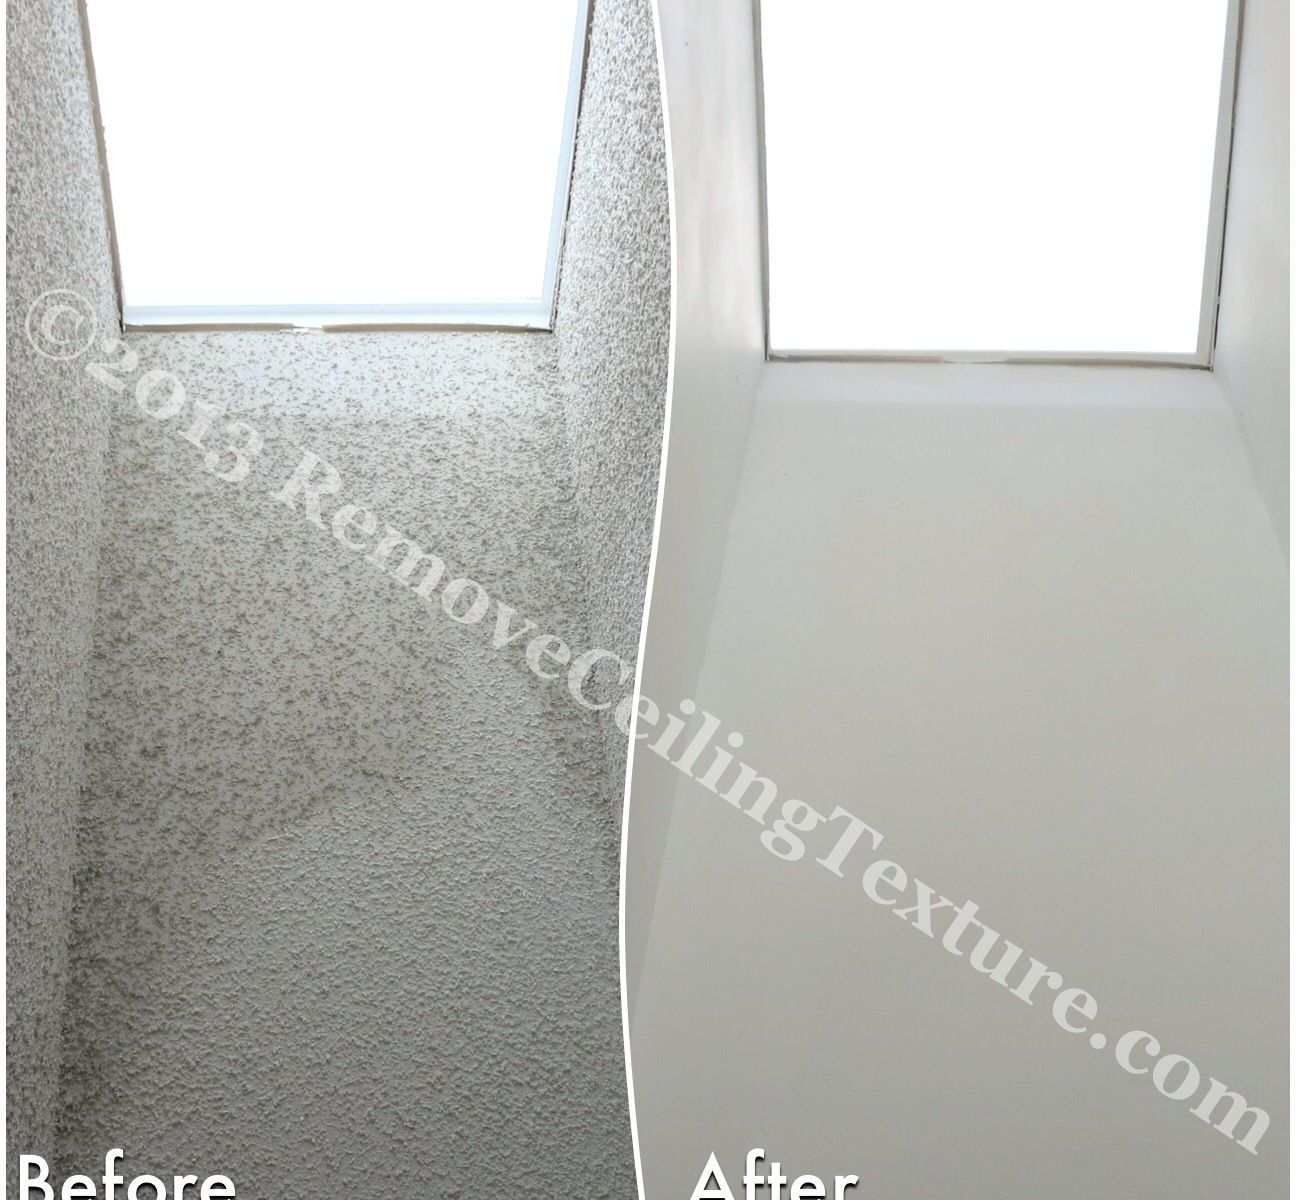 Skylights with ceiling texture can be damaged by moisture